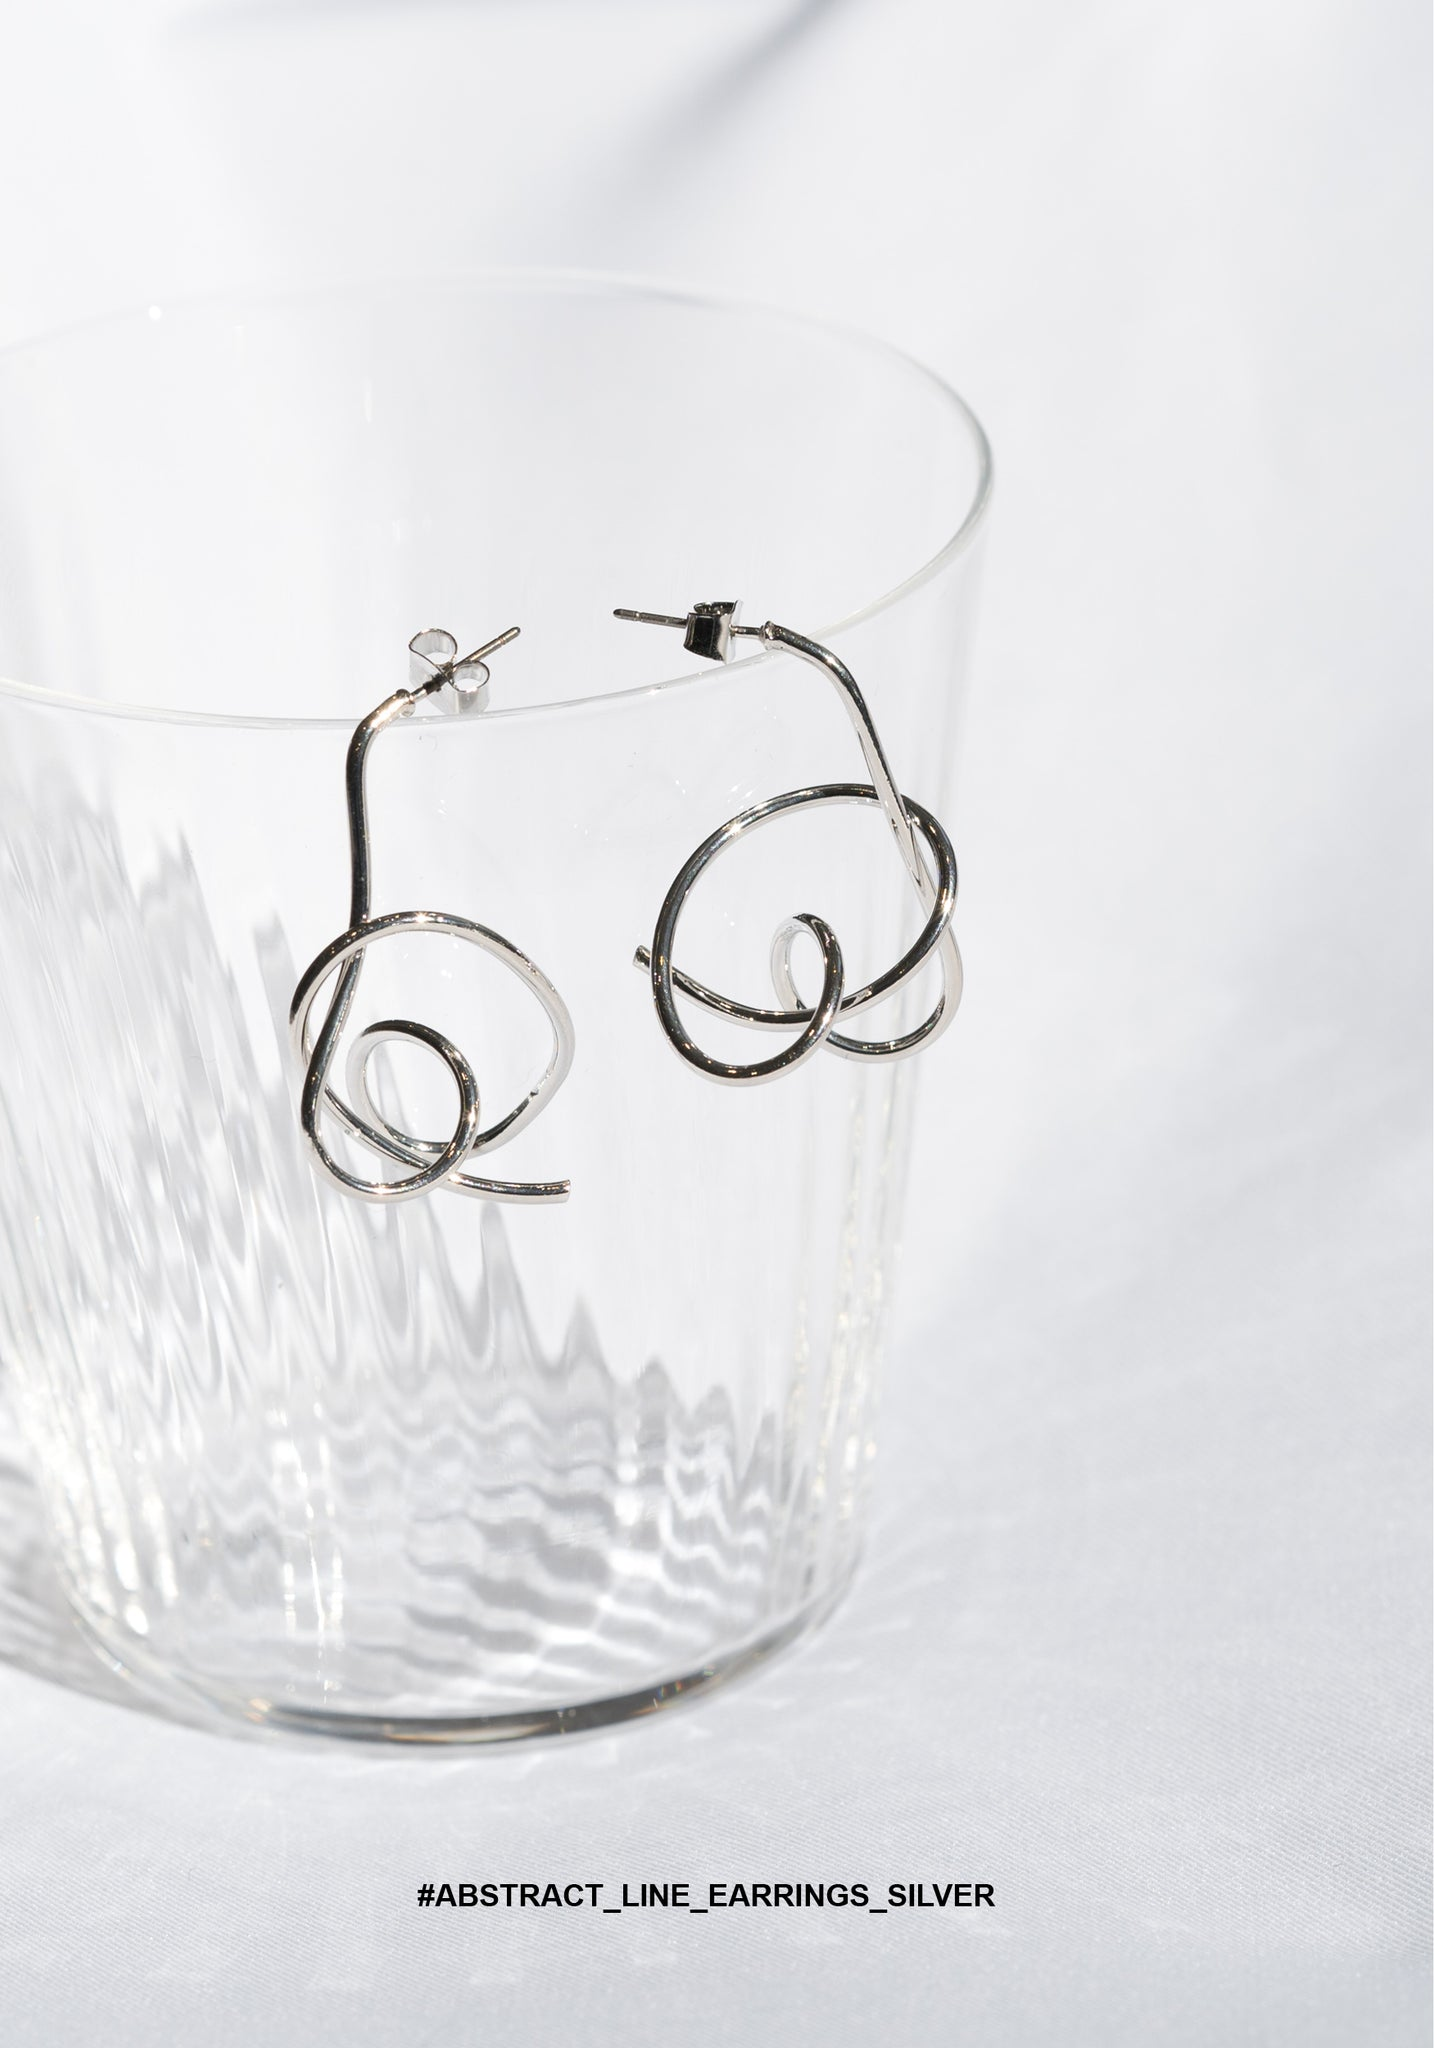 Abstract Line Earrings Silver - whoami